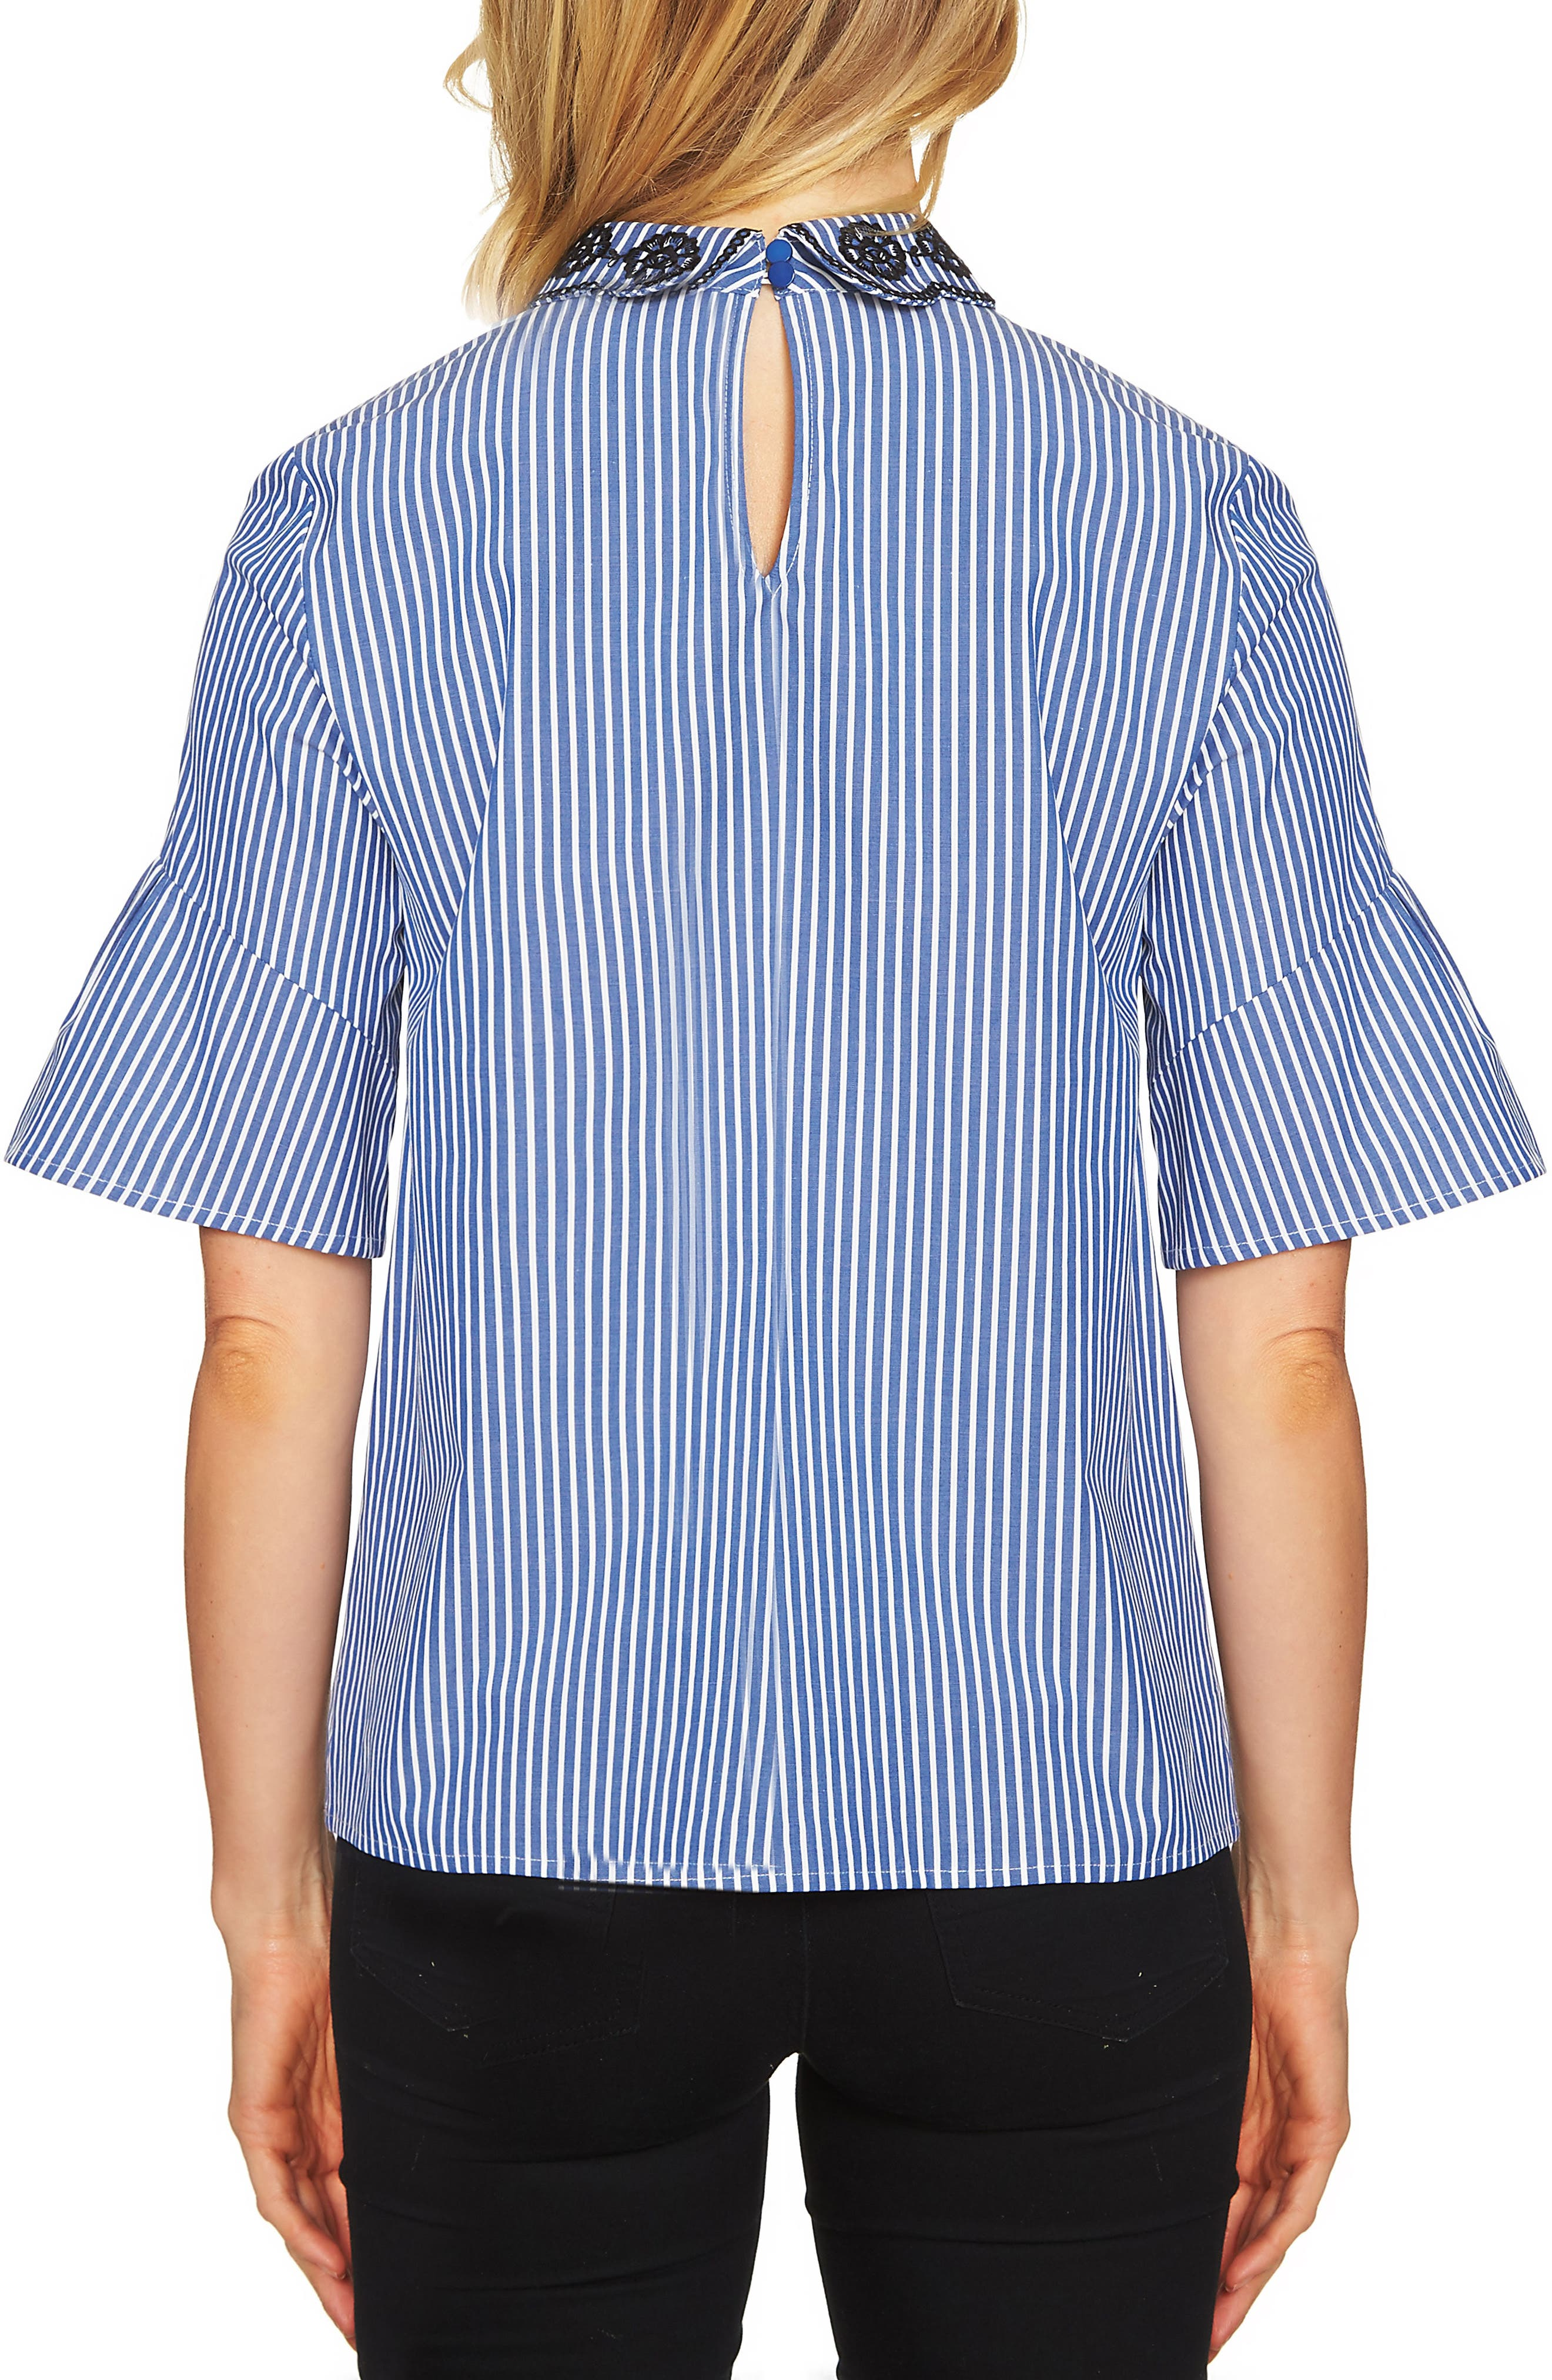 Ruffle Sleeve Stripe Top,                             Alternate thumbnail 2, color,                             406